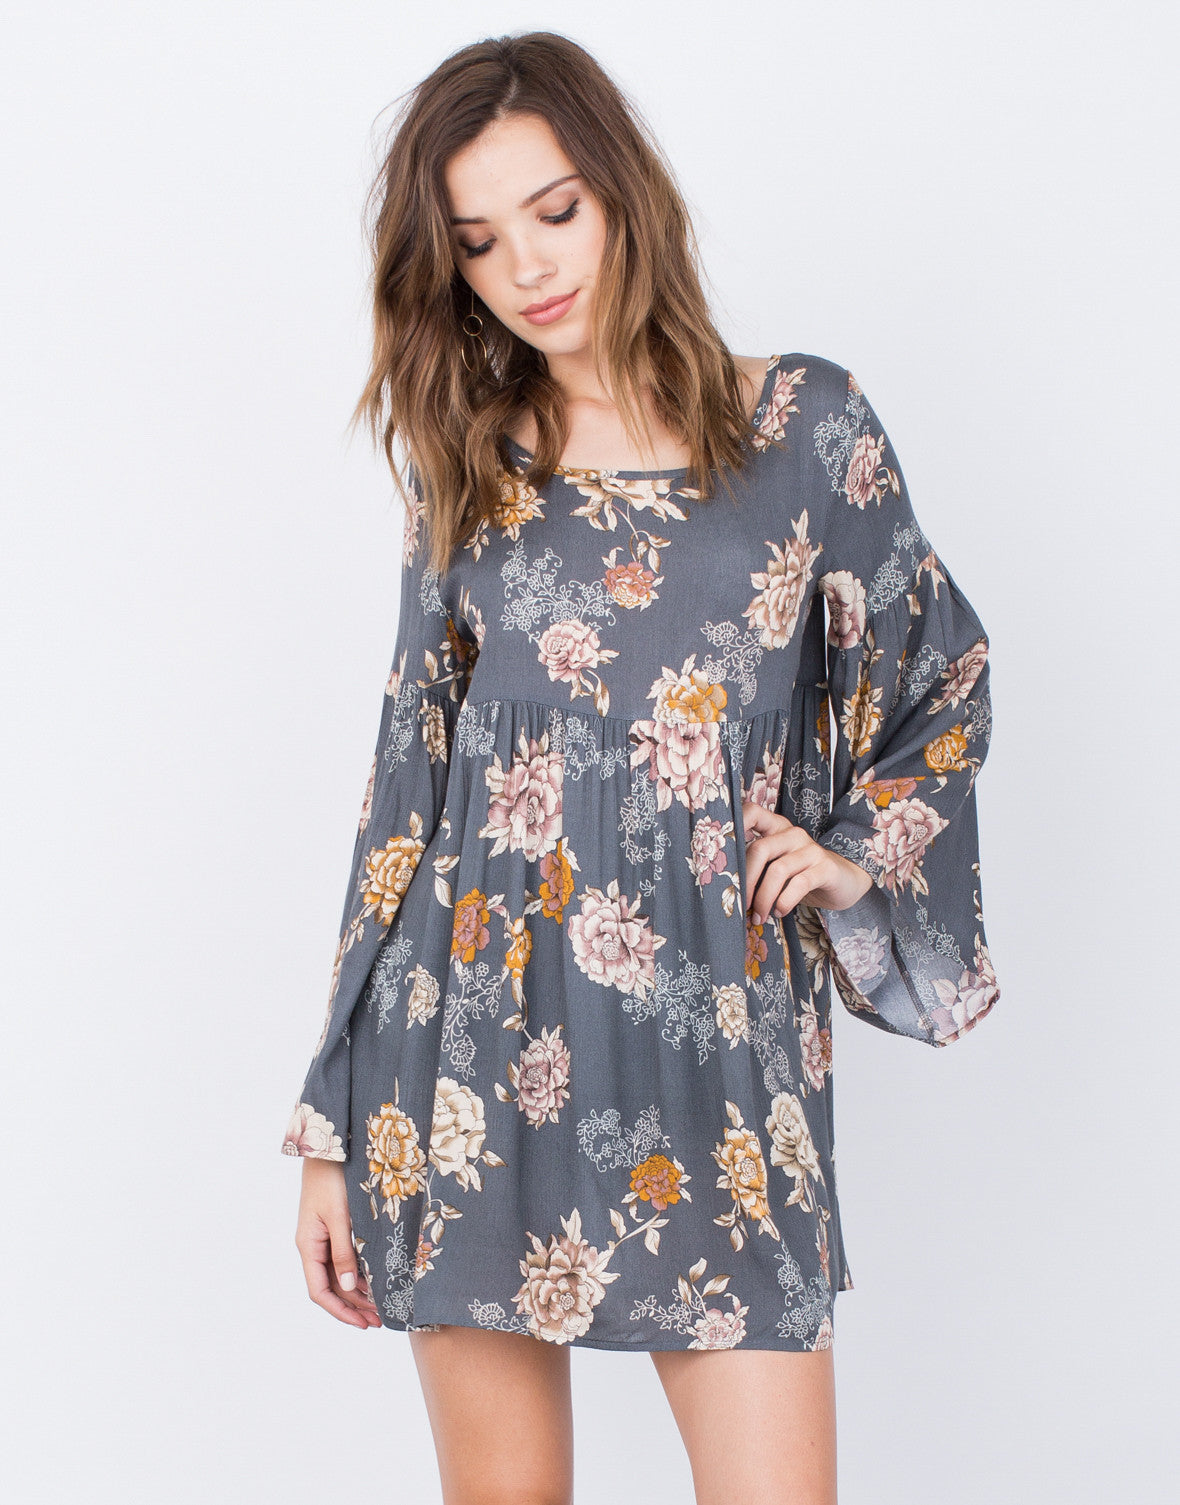 Front View of Autumn Florals Dress